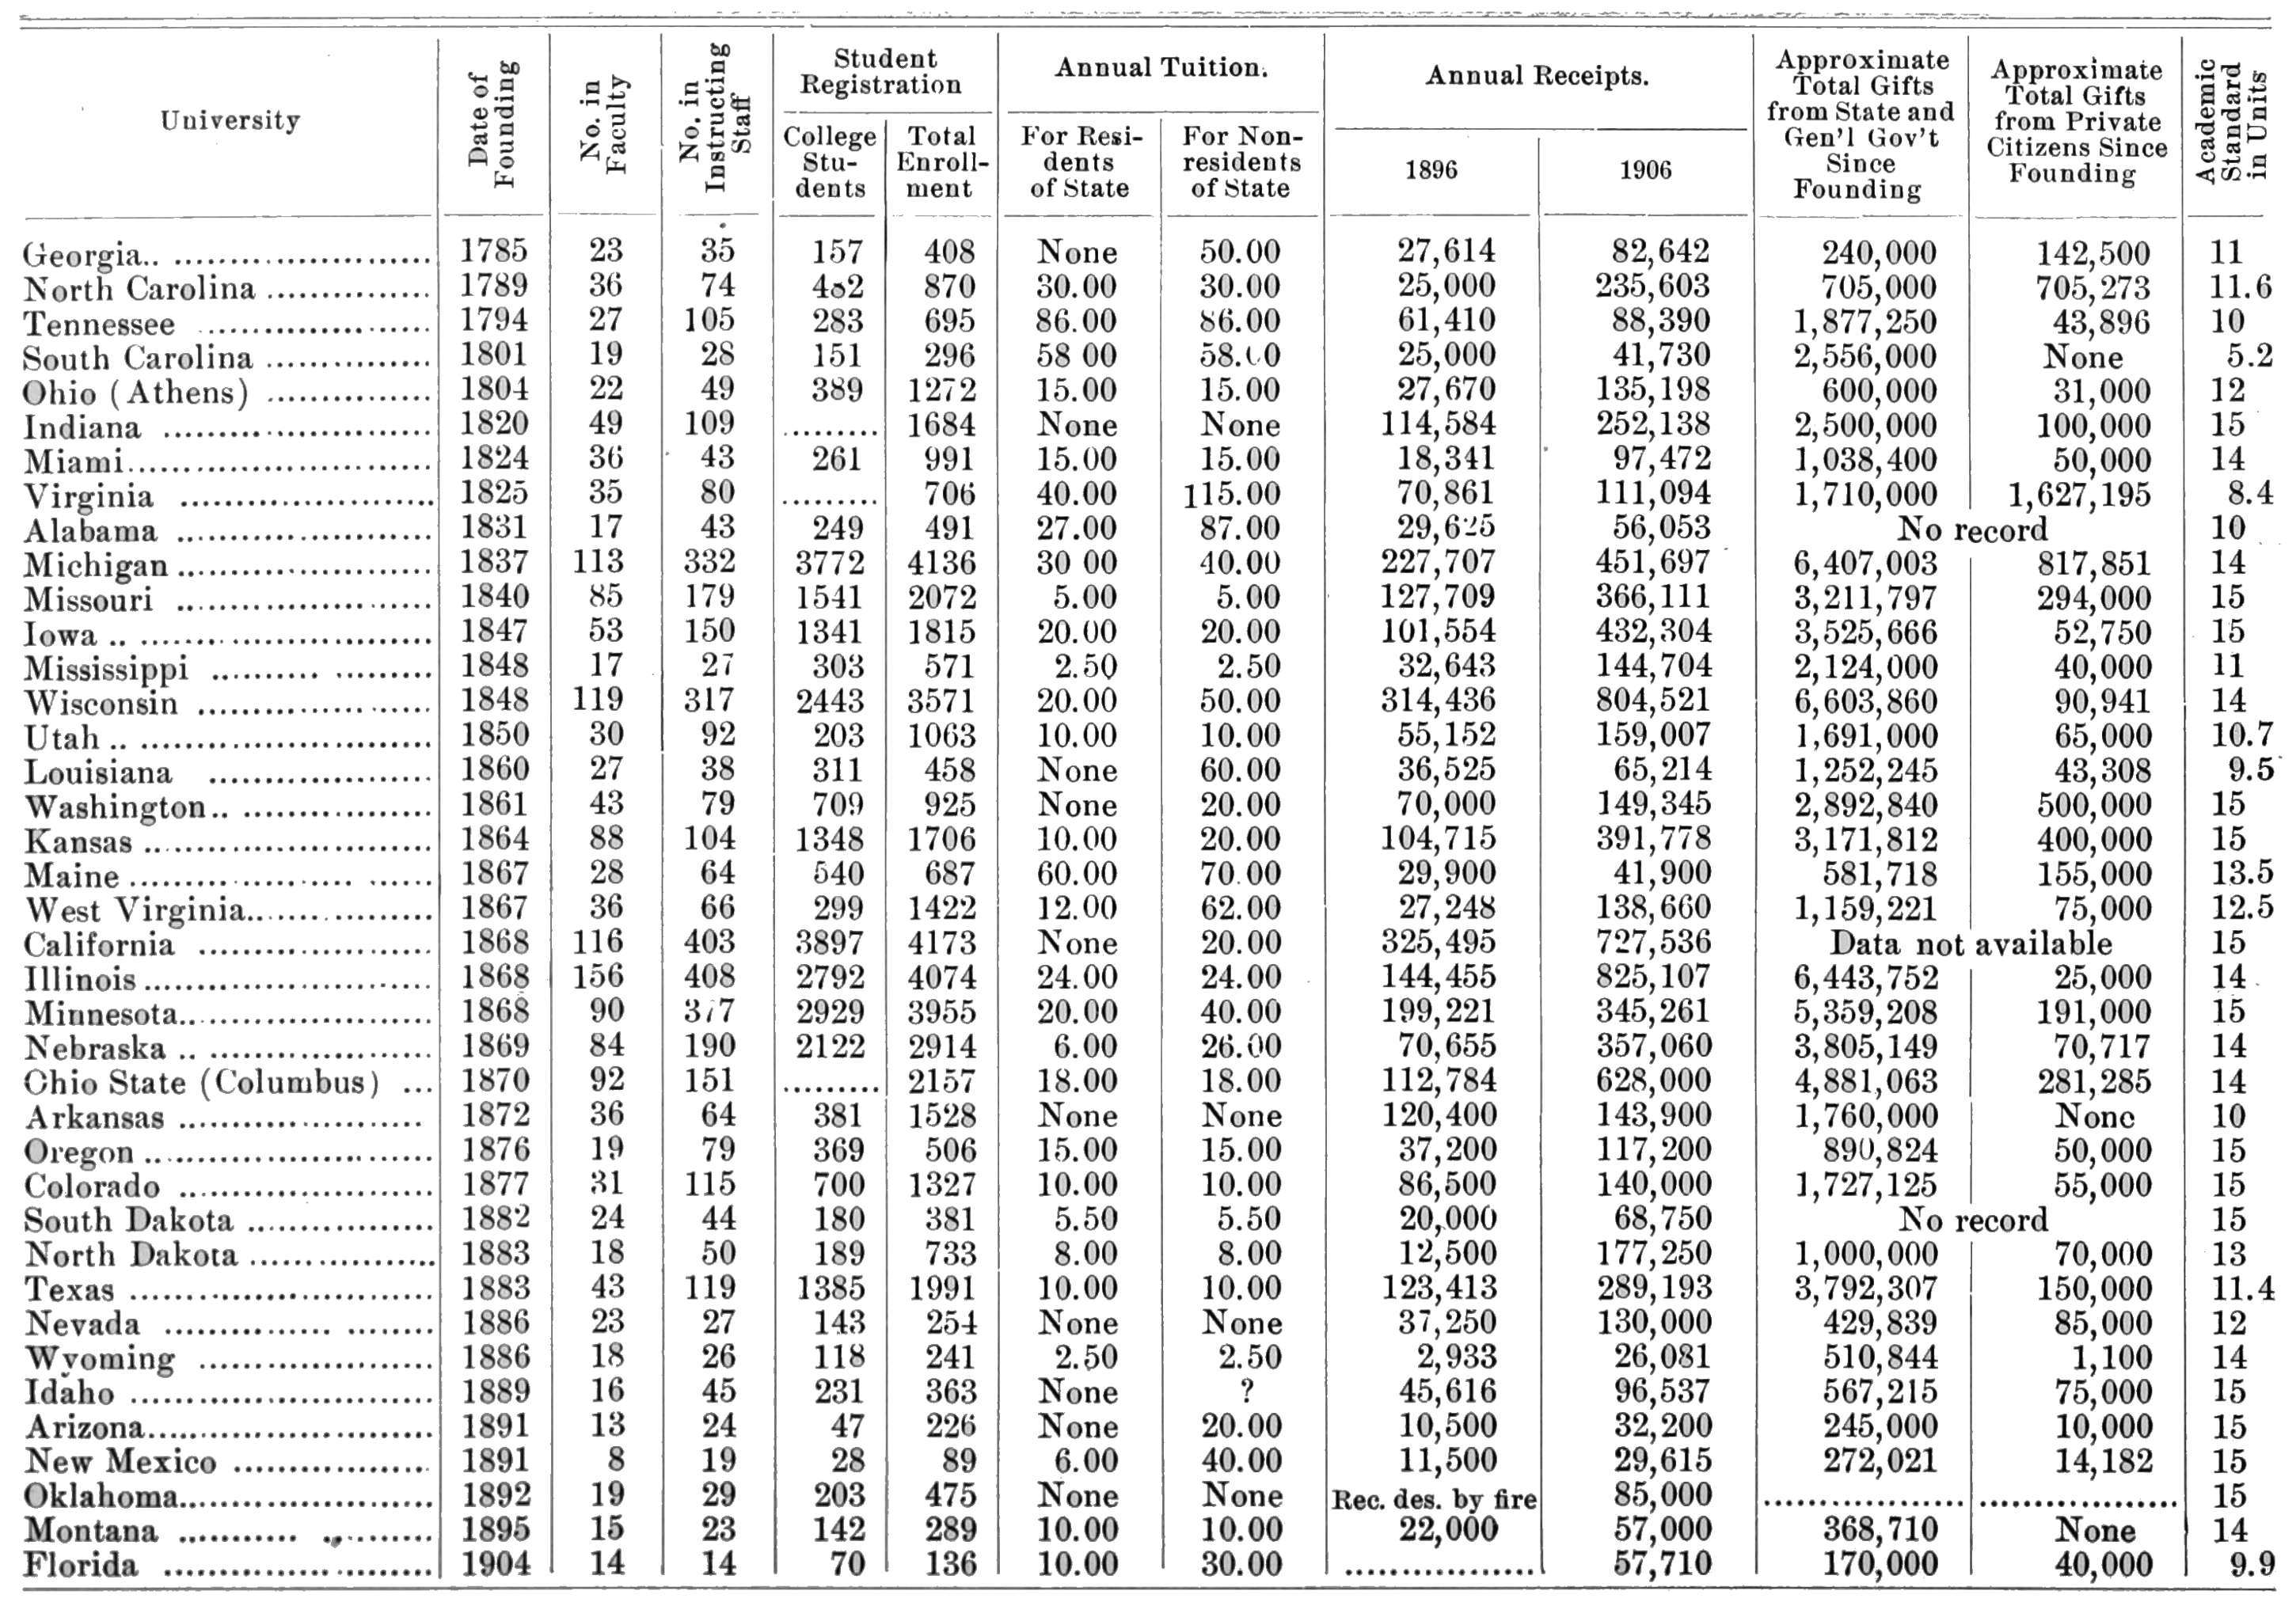 PSM V71 D484 The growth of state universities 1907.png